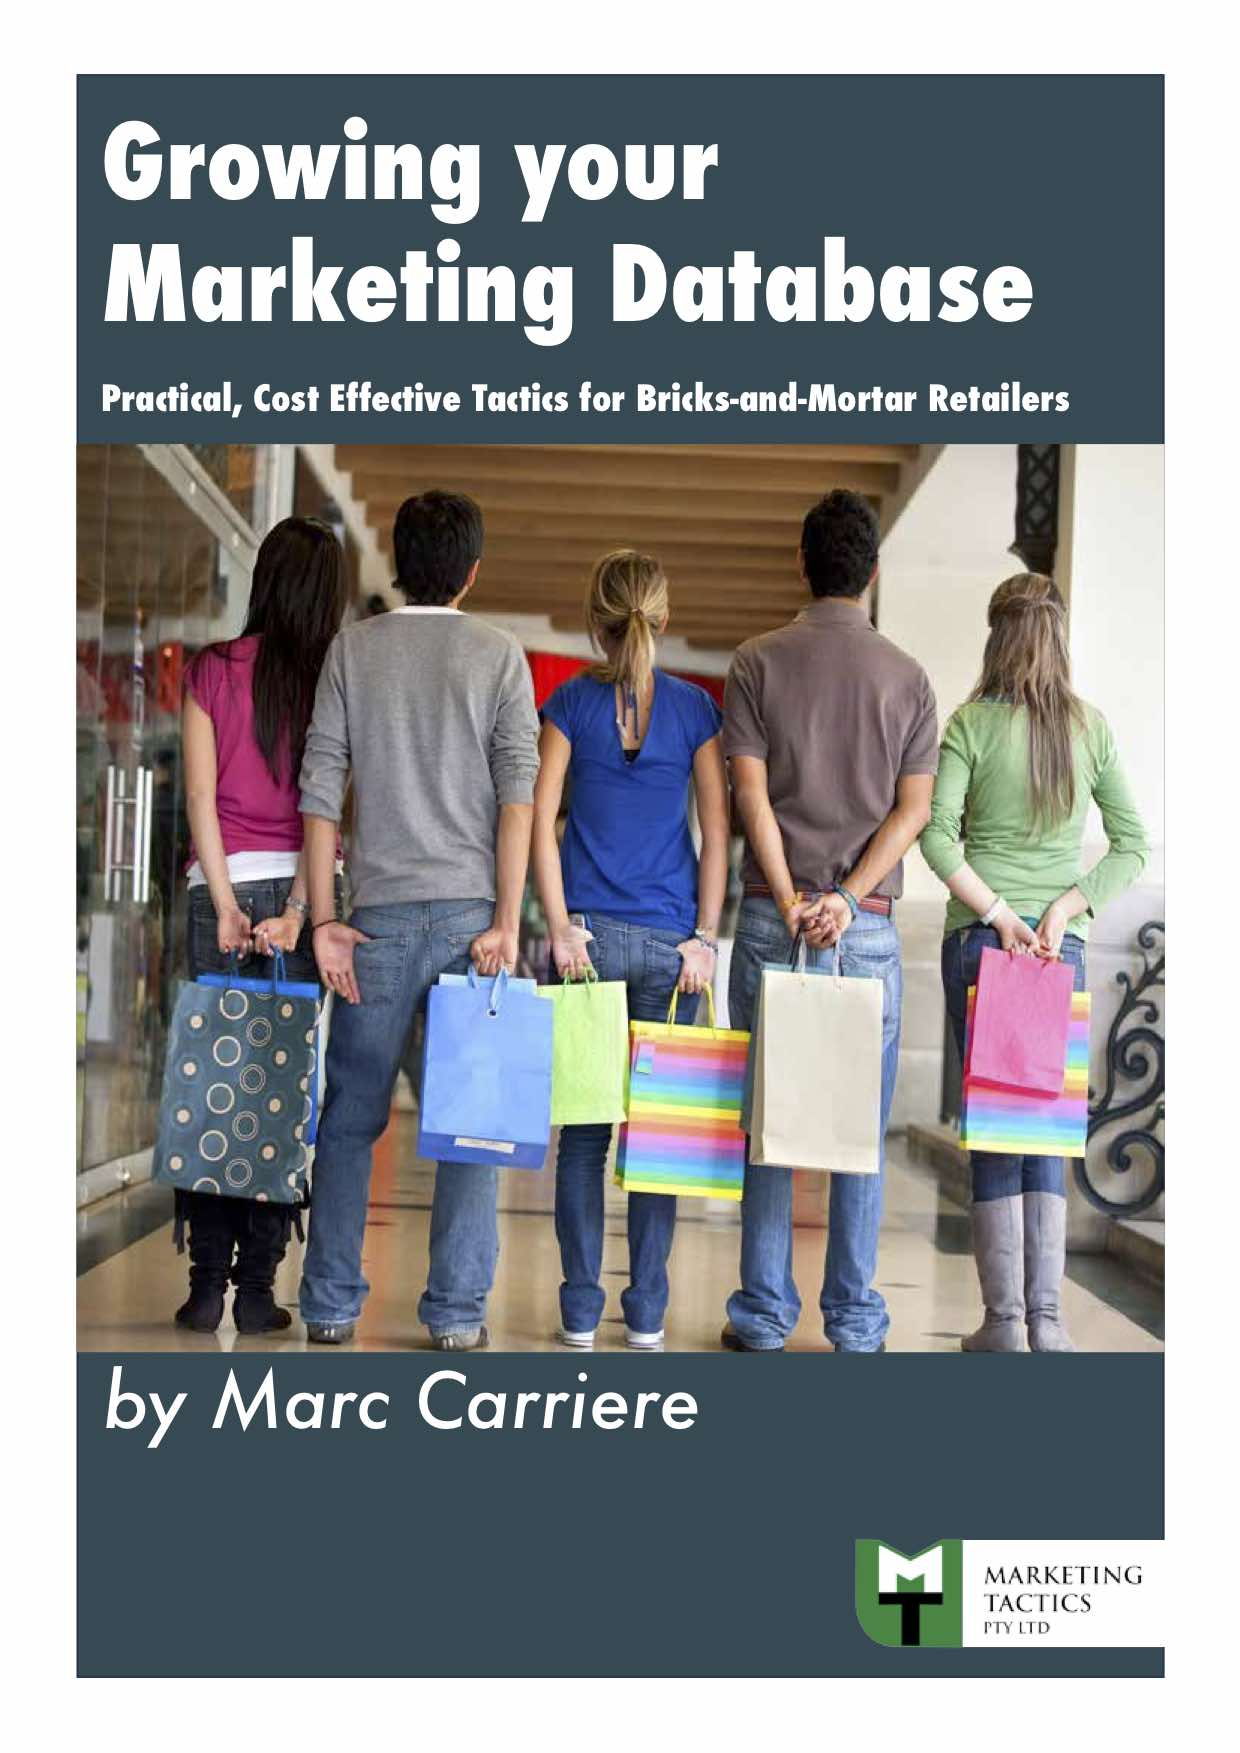 Growing your Marketing Database cover